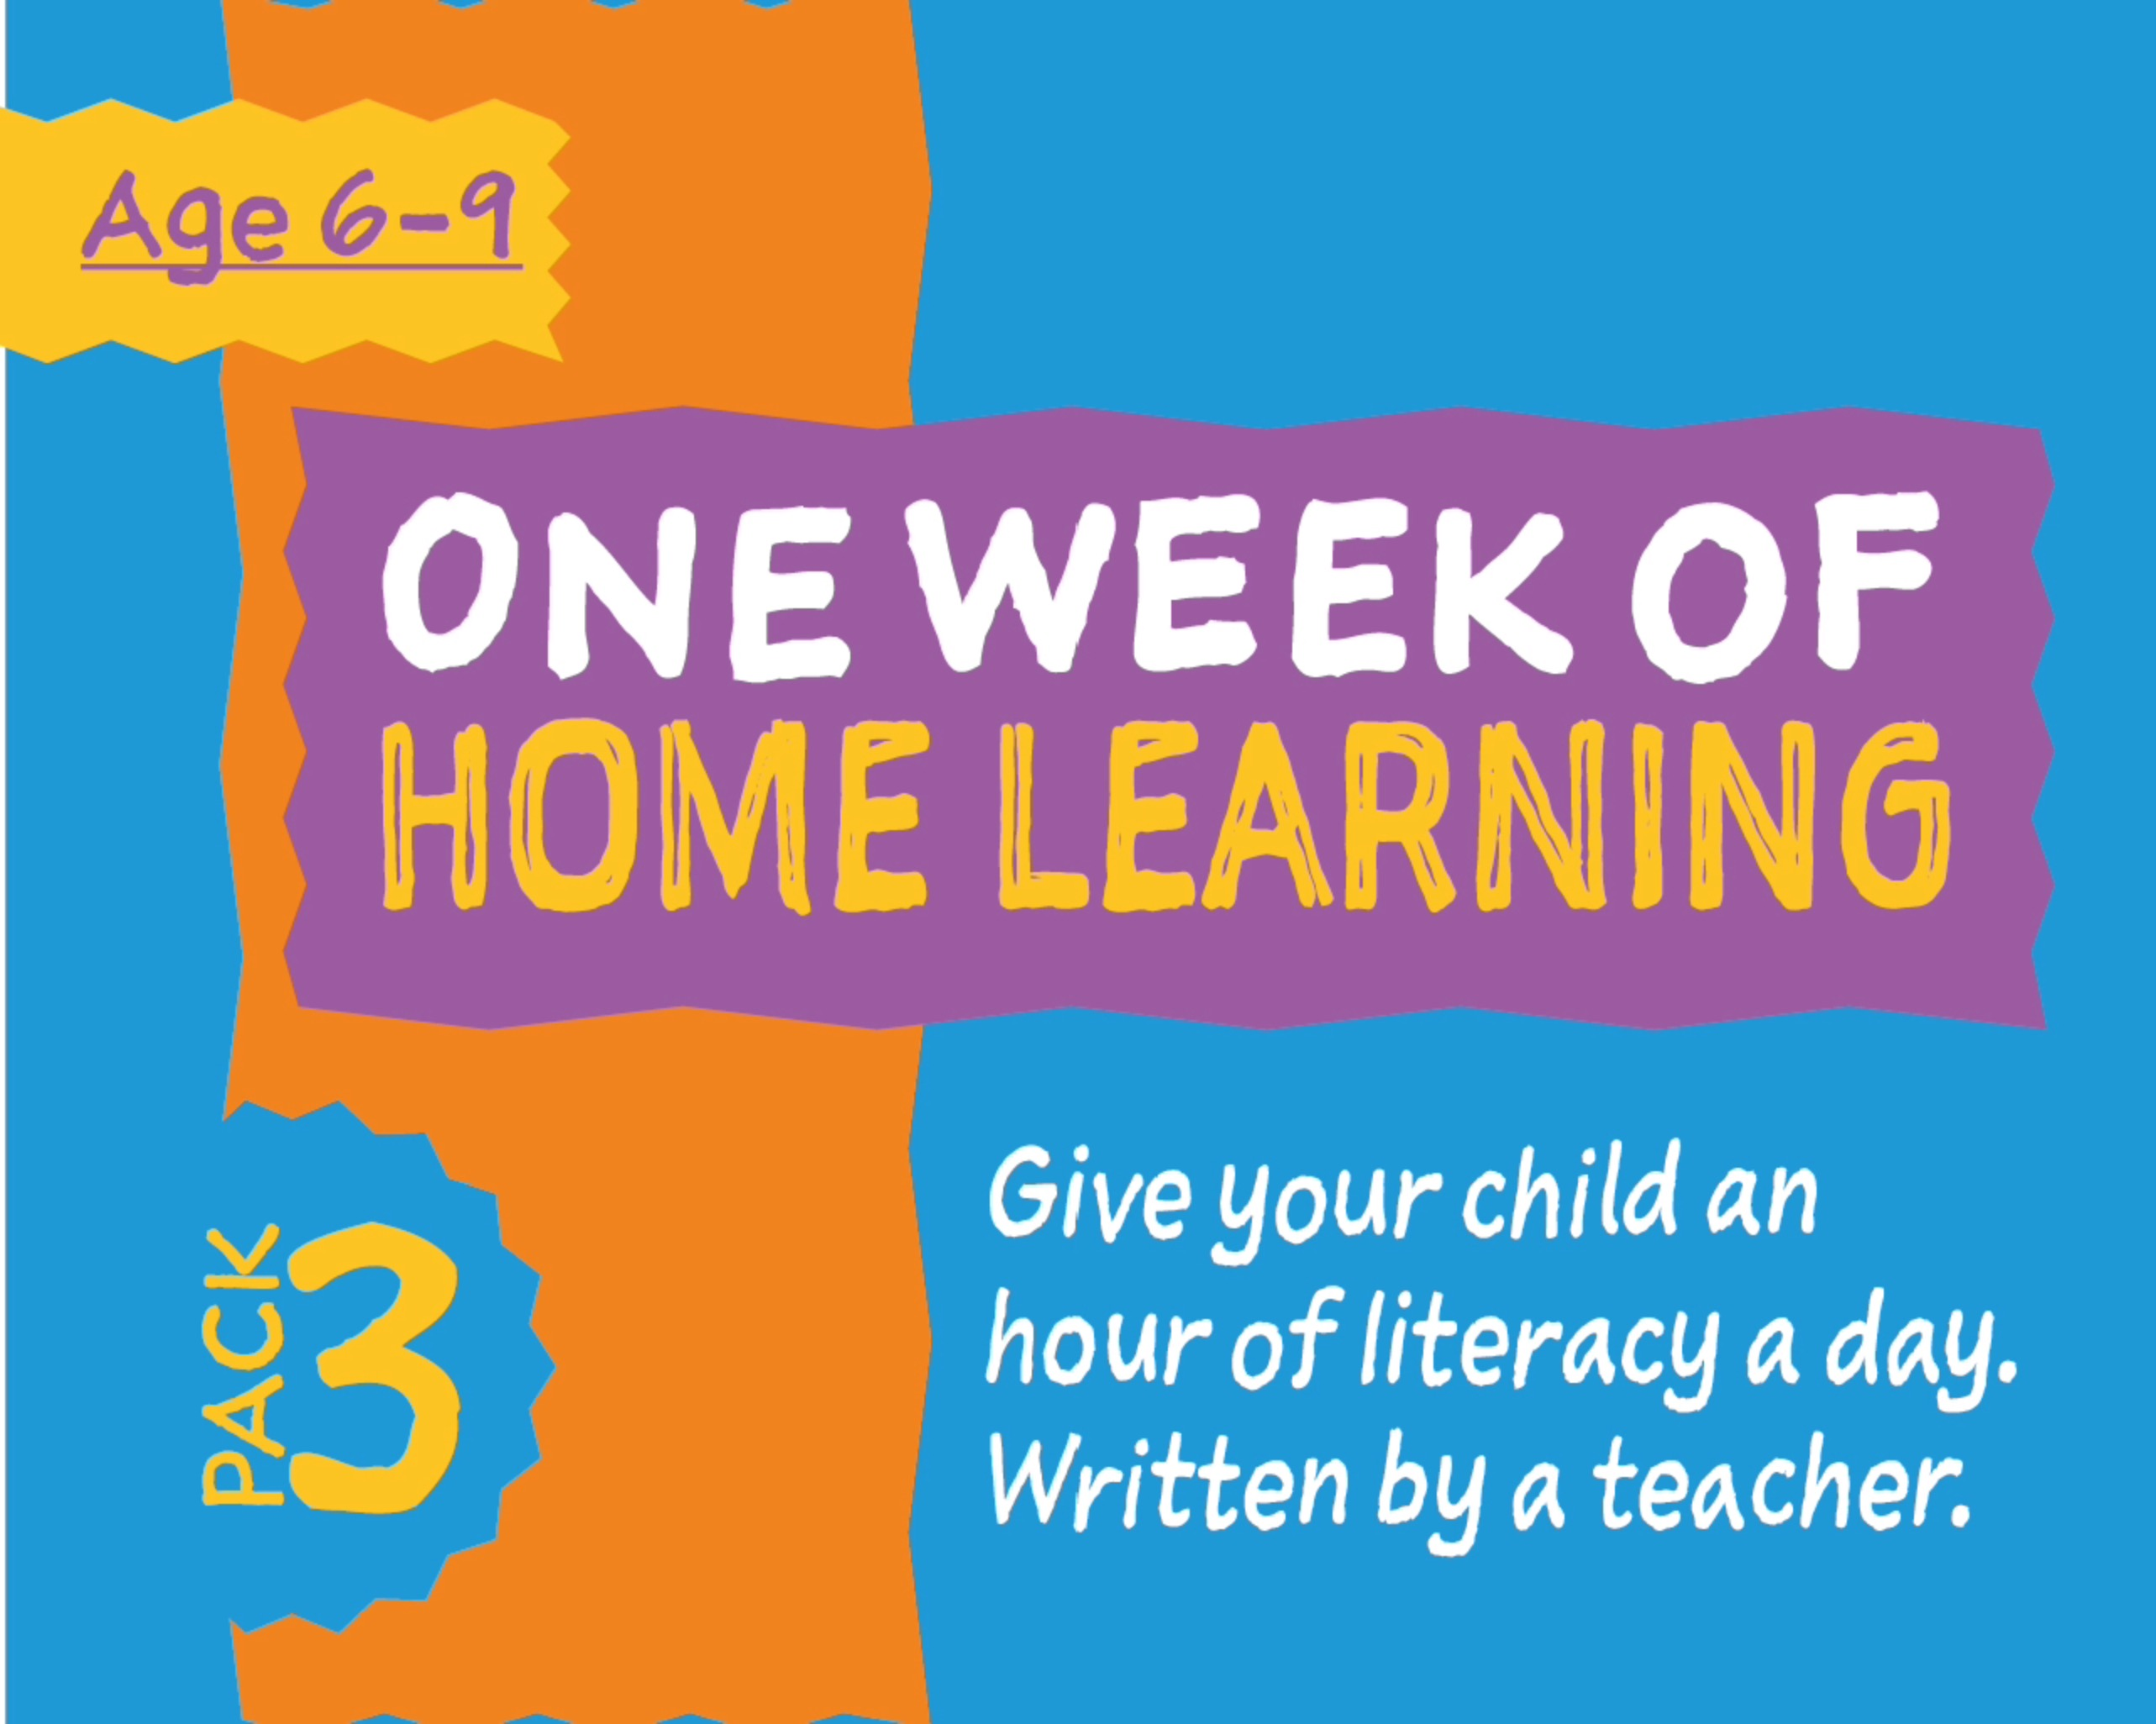 1 Week Literacy Distance Learning: PACK THREE (age 6-9) Grades 1-3